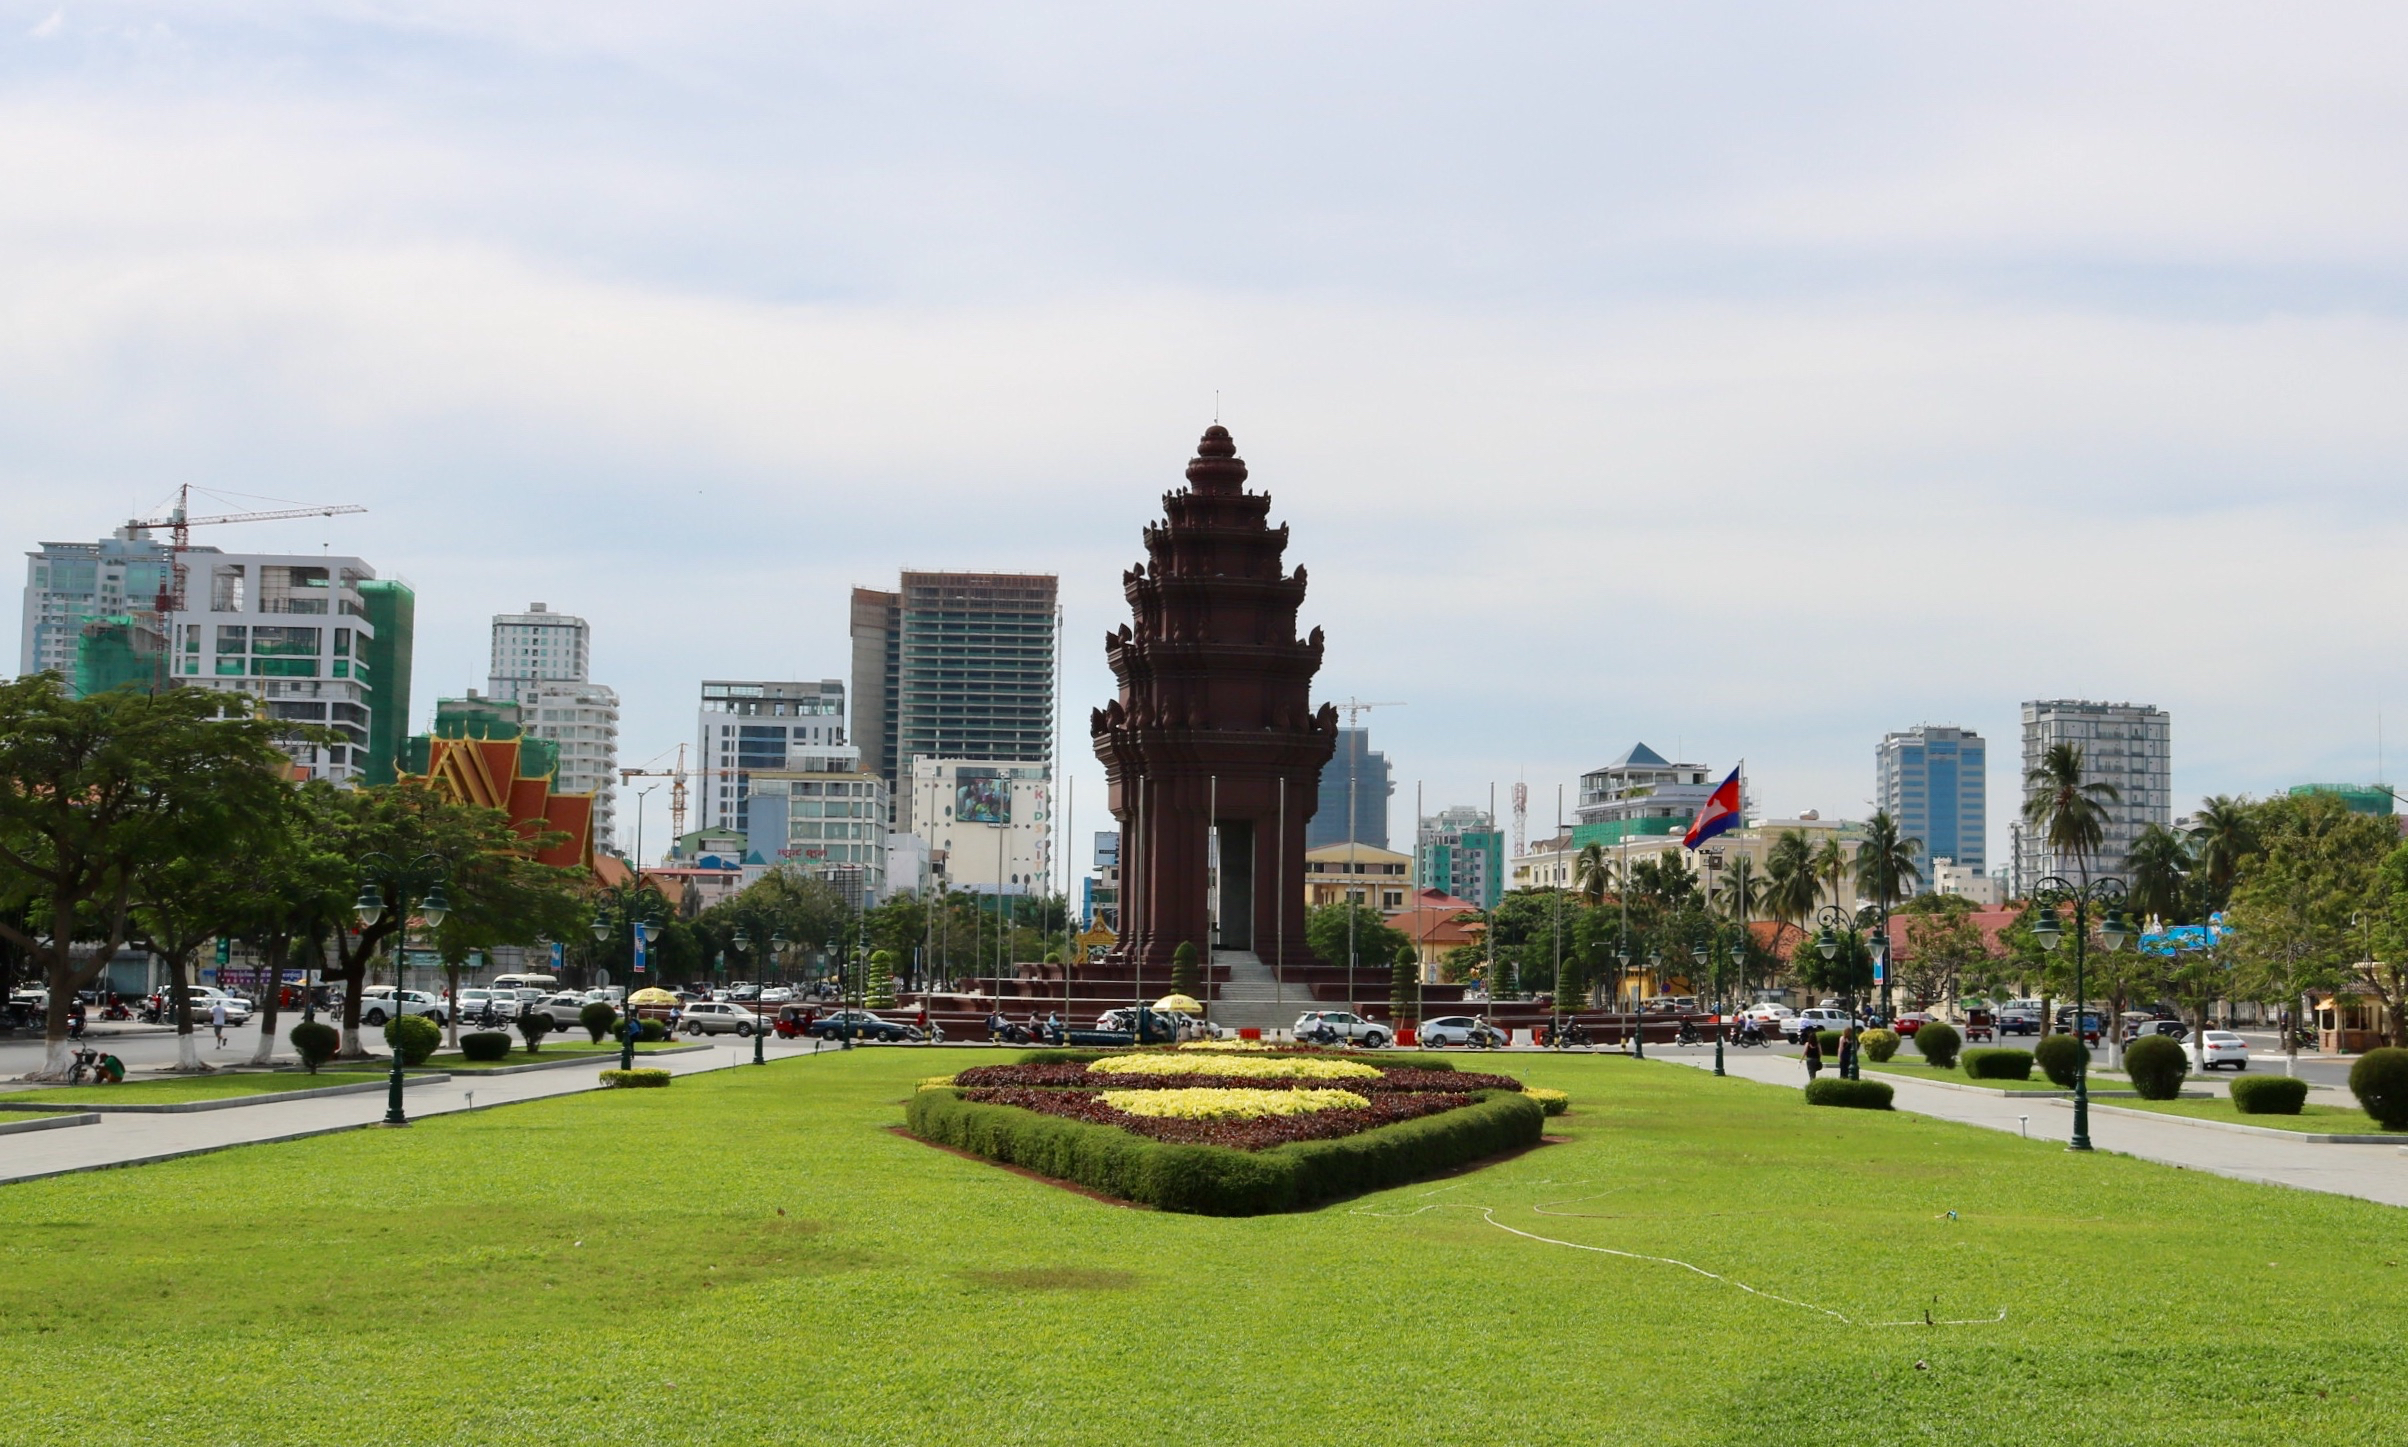 Phnom Penh – A Glimpse Into A Horrific Past